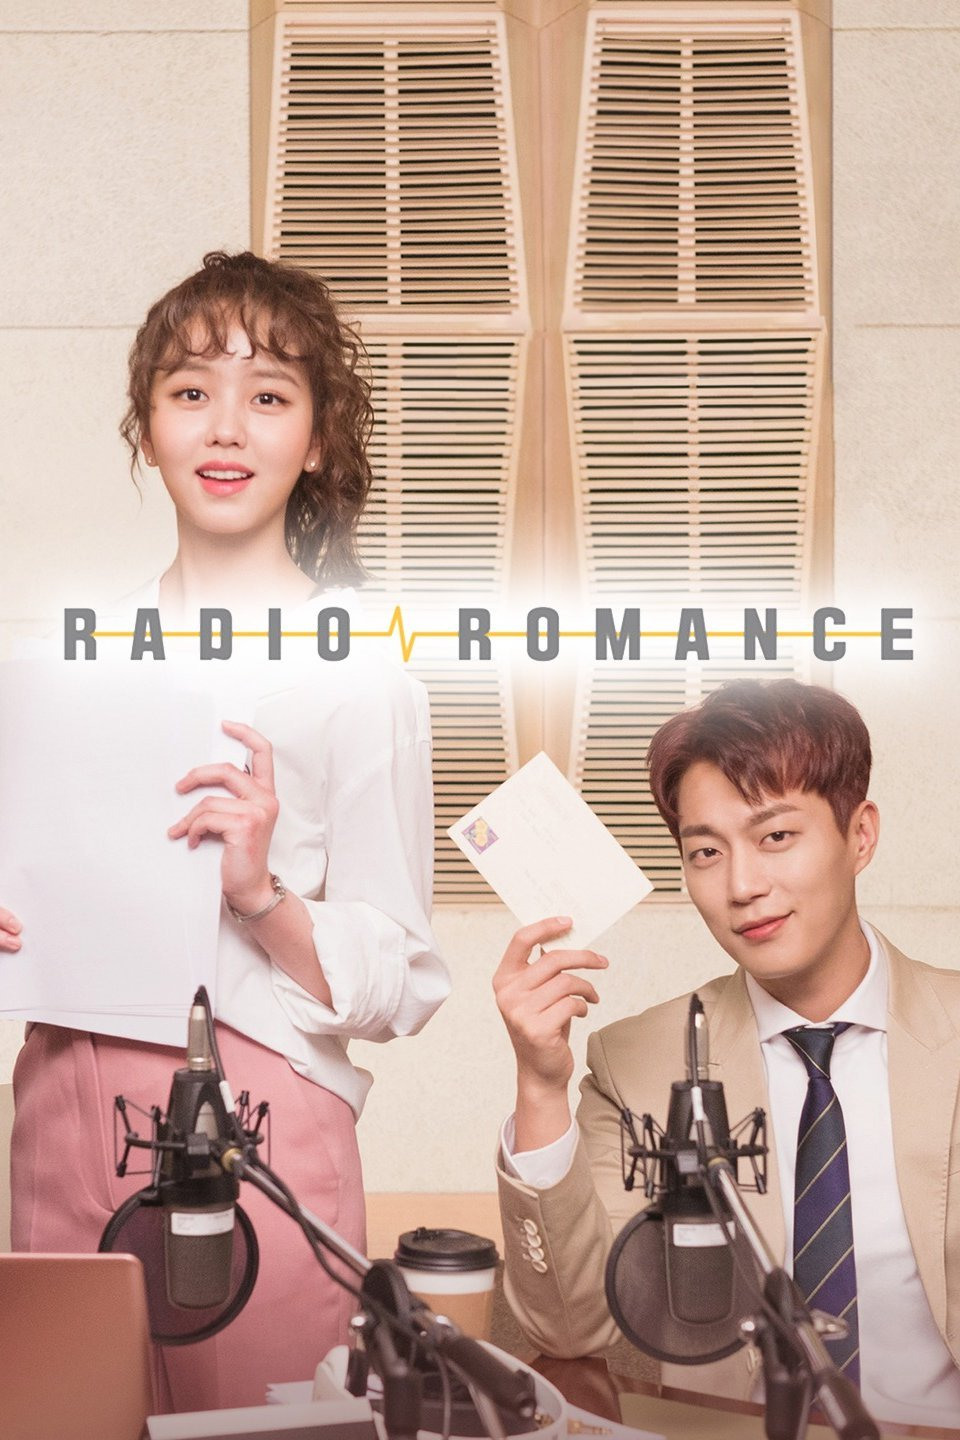 Image result for Radio Romance